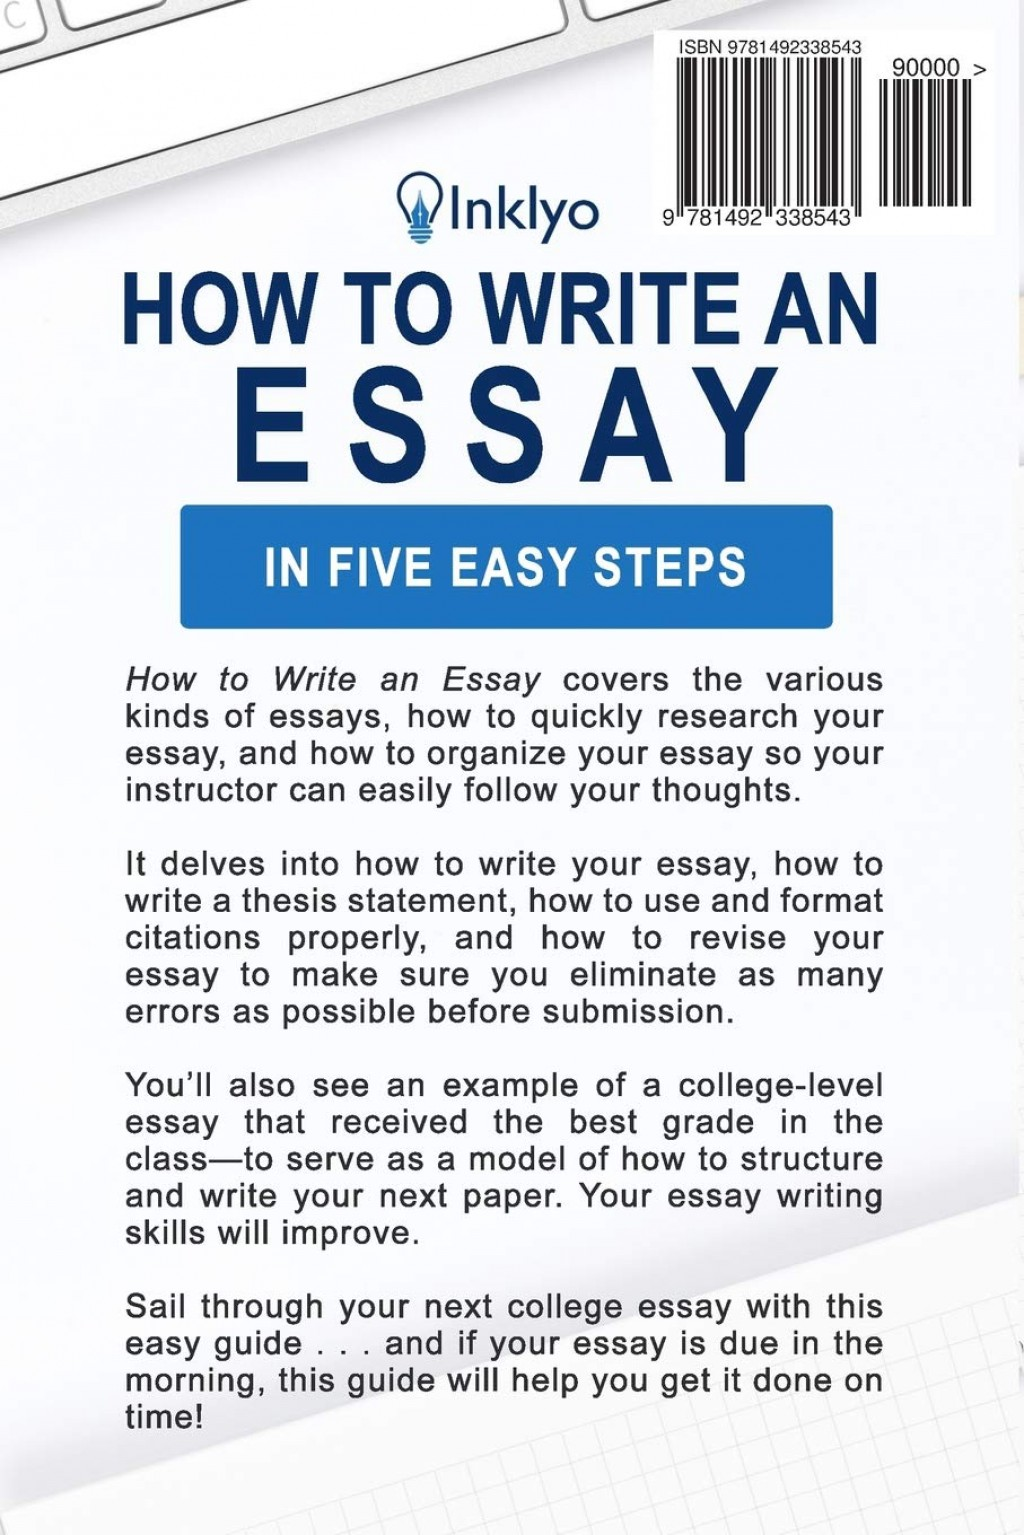 002 How To Write An Essay Example Shocking In Mla Format Word 2013 About Yourself For College Application Large